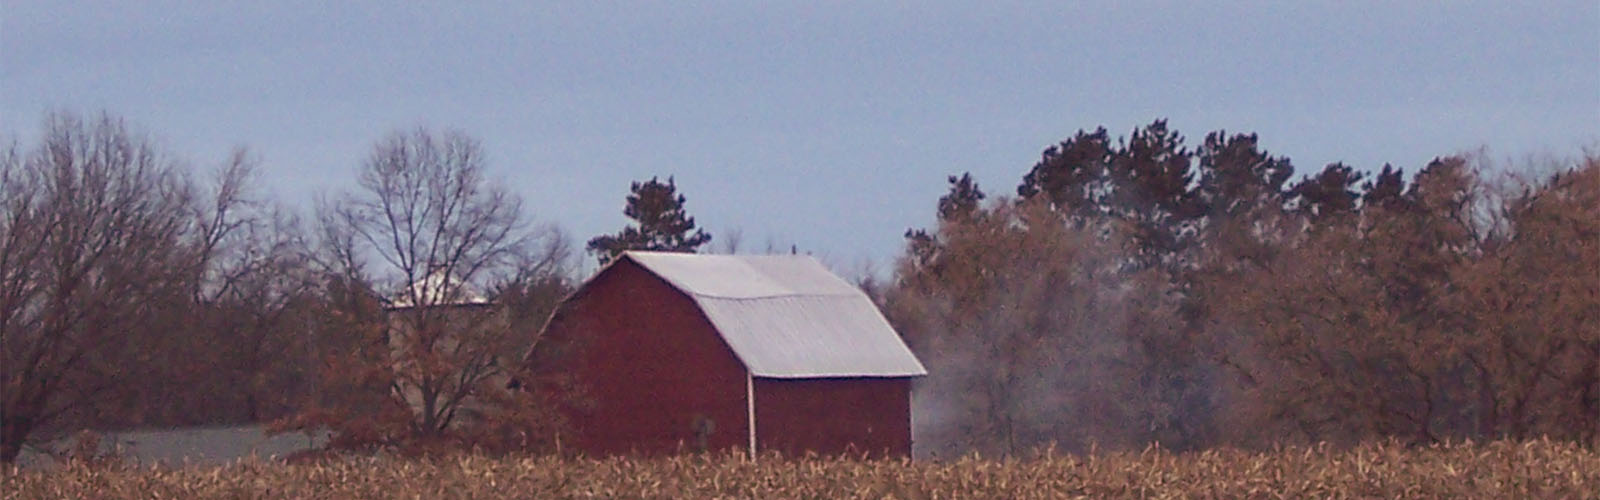 A red barn against a backdrop of trees and golden grain